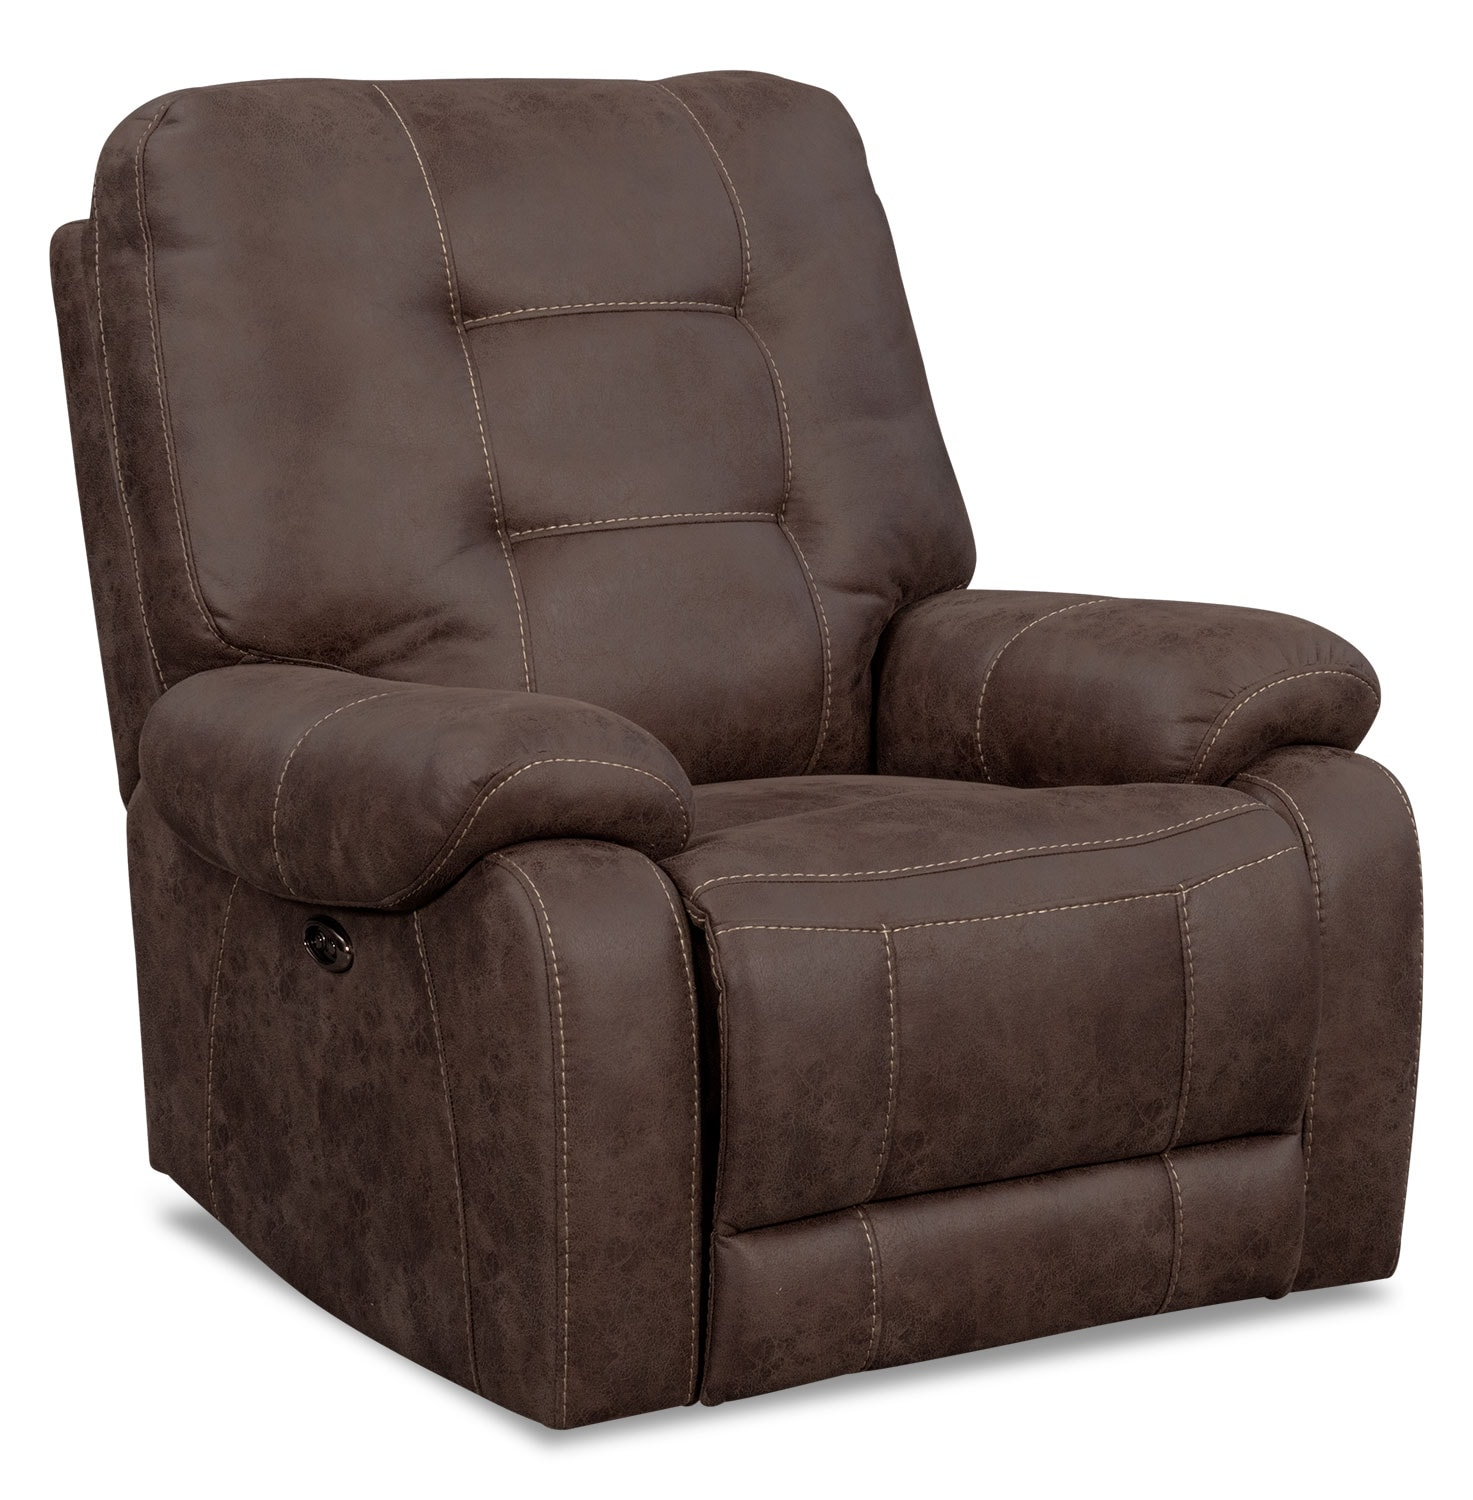 Living Room Furniture - Denali Power Recliner - Mocha